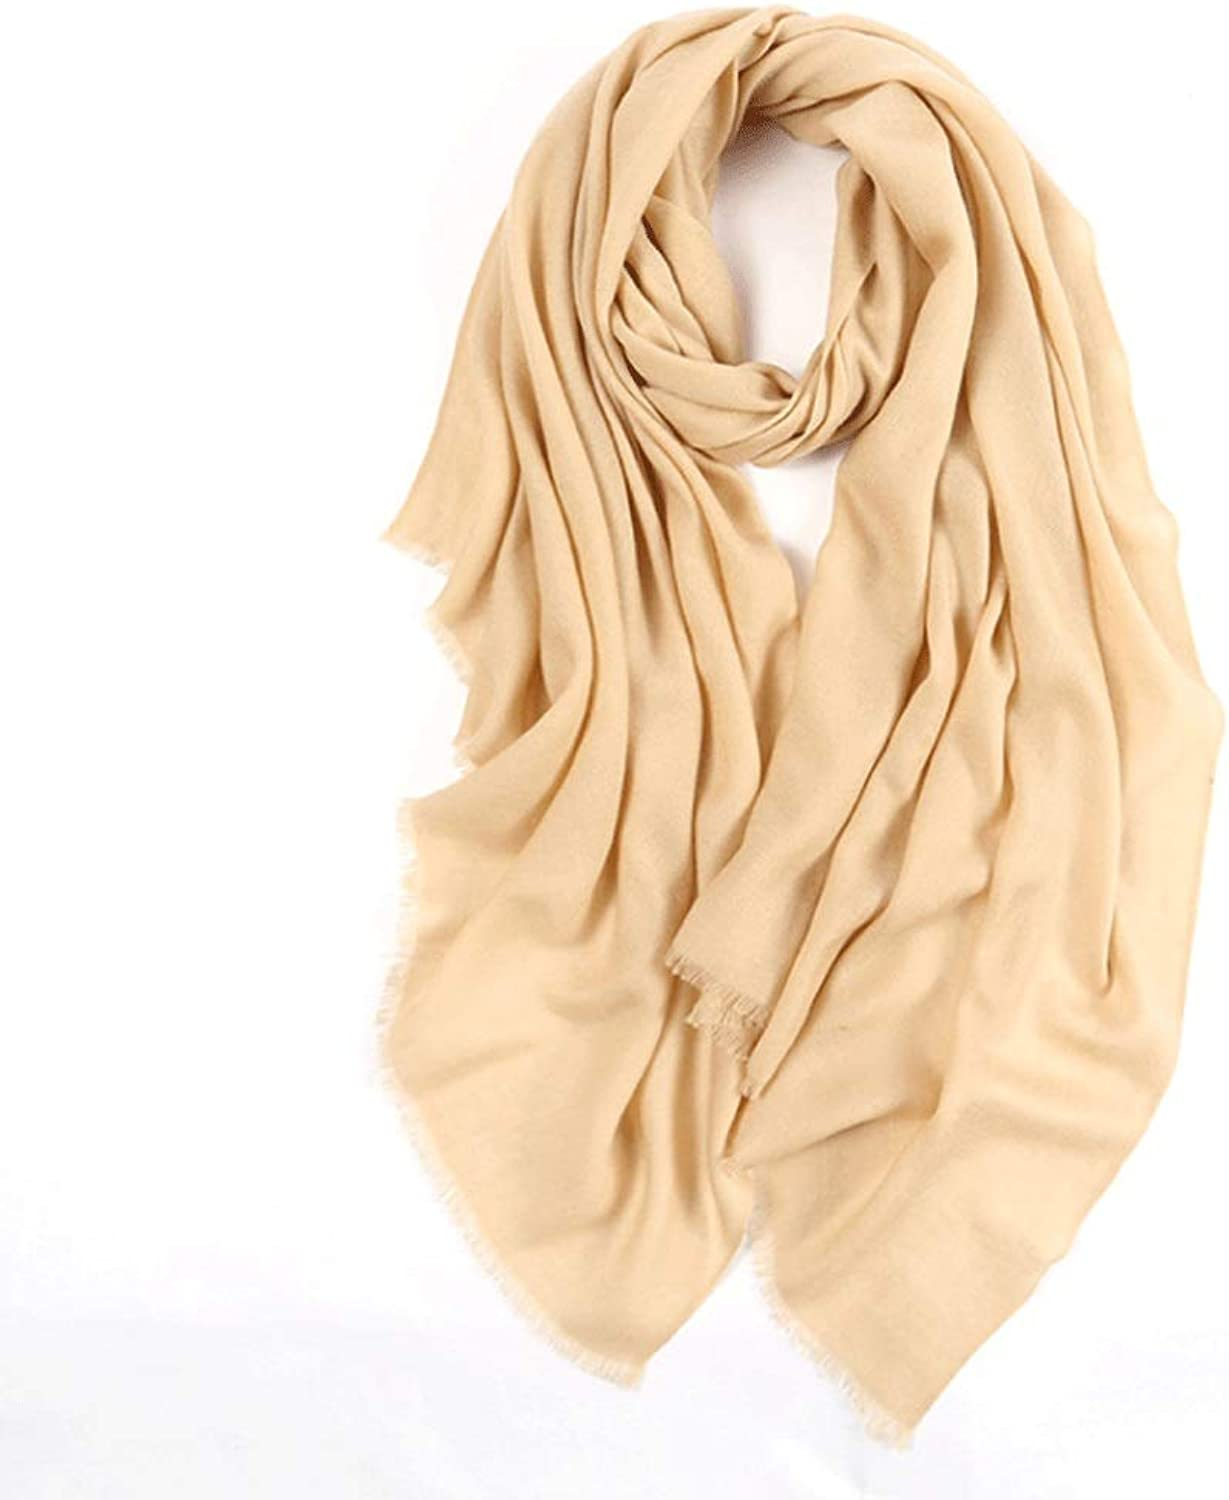 CHX Scarf Pure Wool Solid color Shawl Printing Process Winter Warm Long Scarf V (color   Apricot)